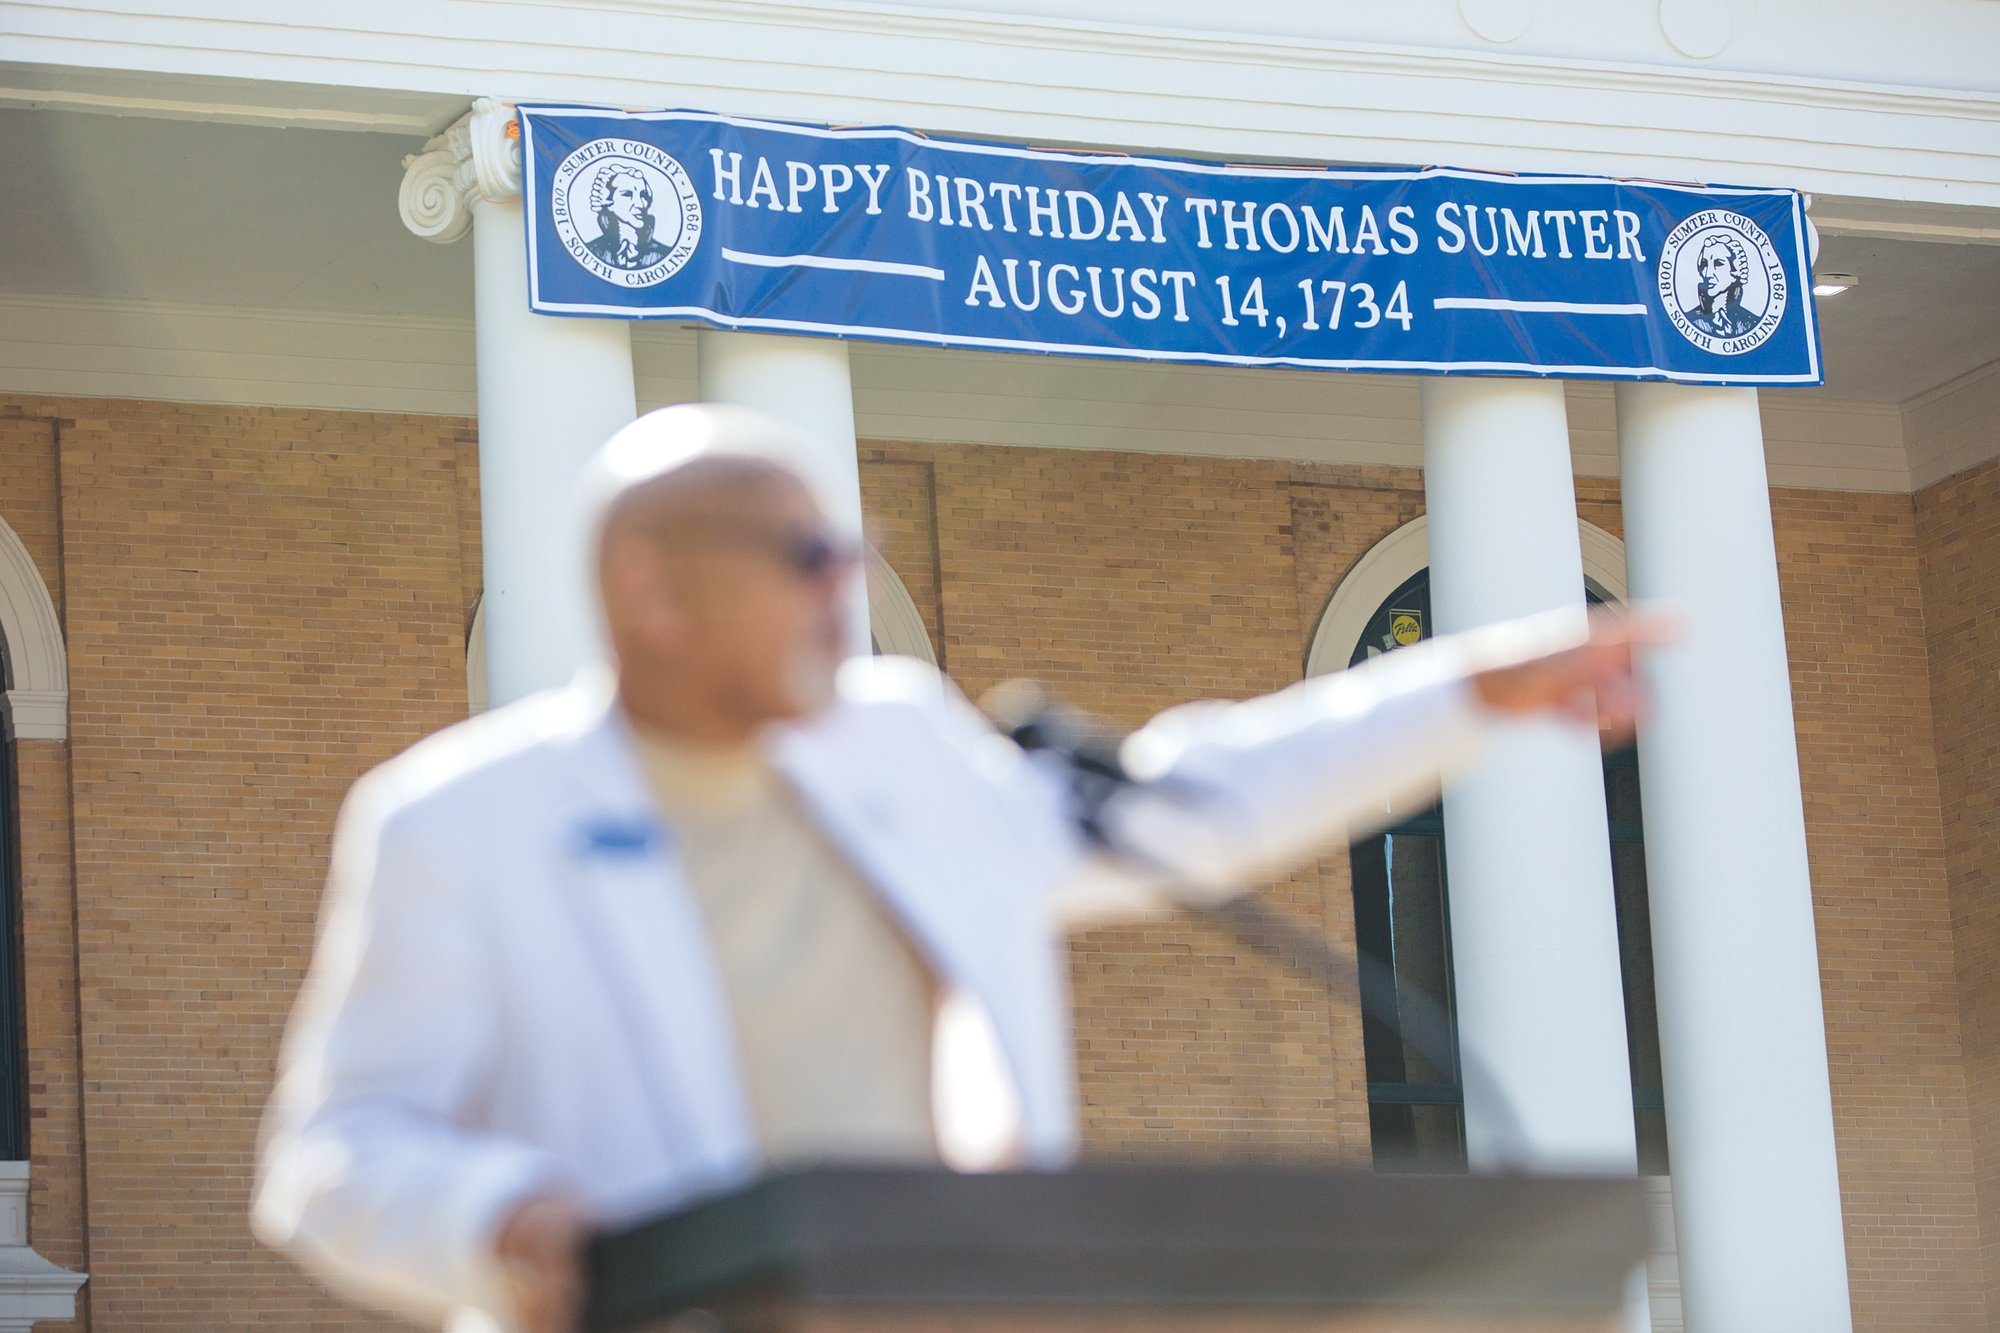 Sumter County Council Chairman Jim McCain gestures during his speech to a crowd about Gen. Thomas Sumter.